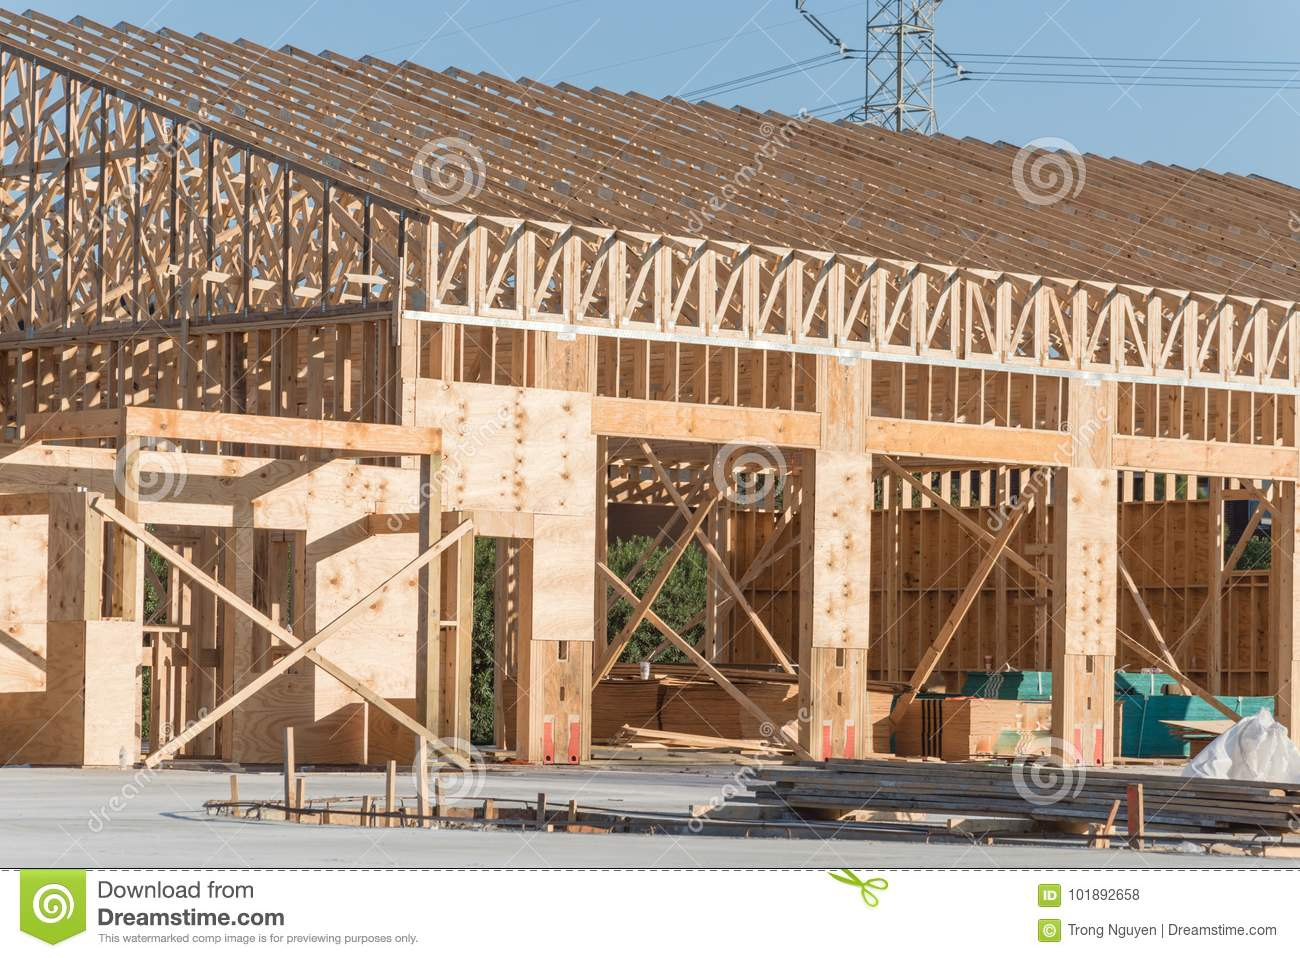 Wooden commercial building construction